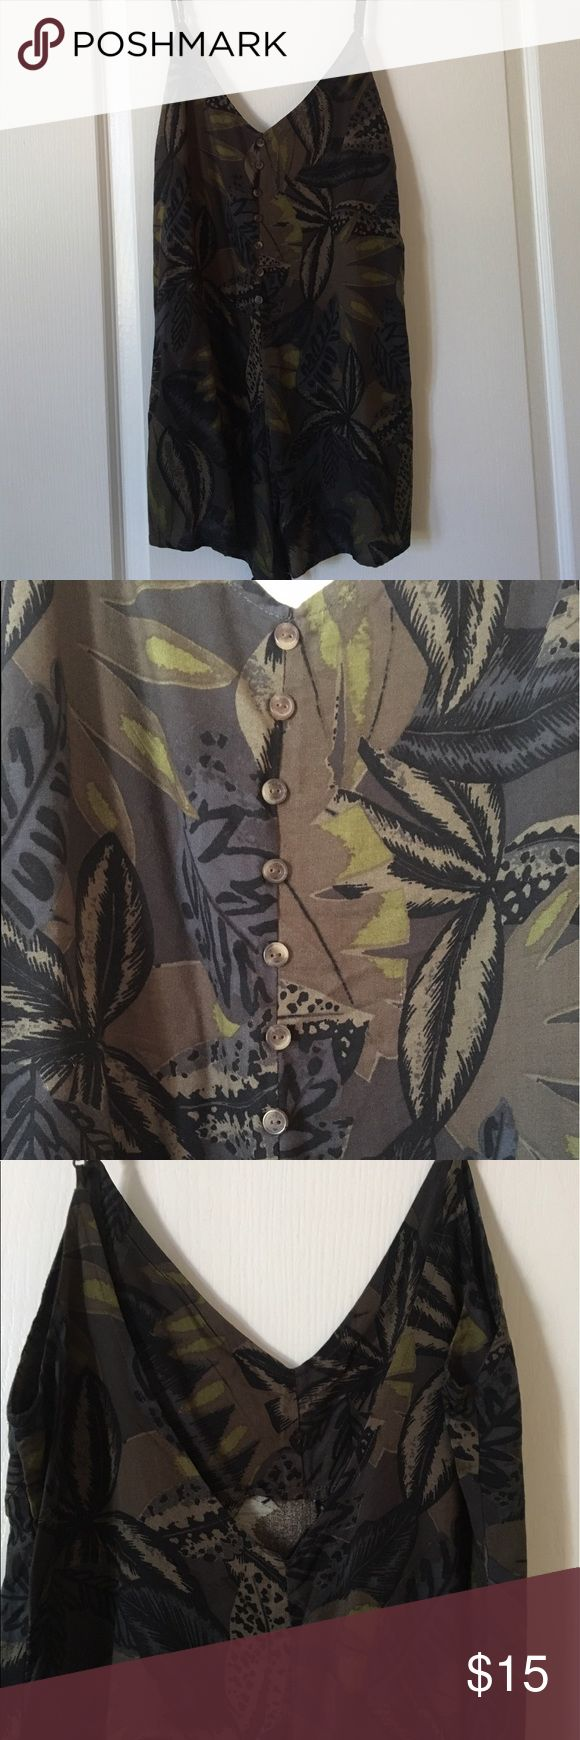 RVCA Floral Jumper - Size Small Super cute RVCA romper! Detailed buttons on the front, low back. Adjustable straps. Moving sale - everything must go! RVCA Dresses